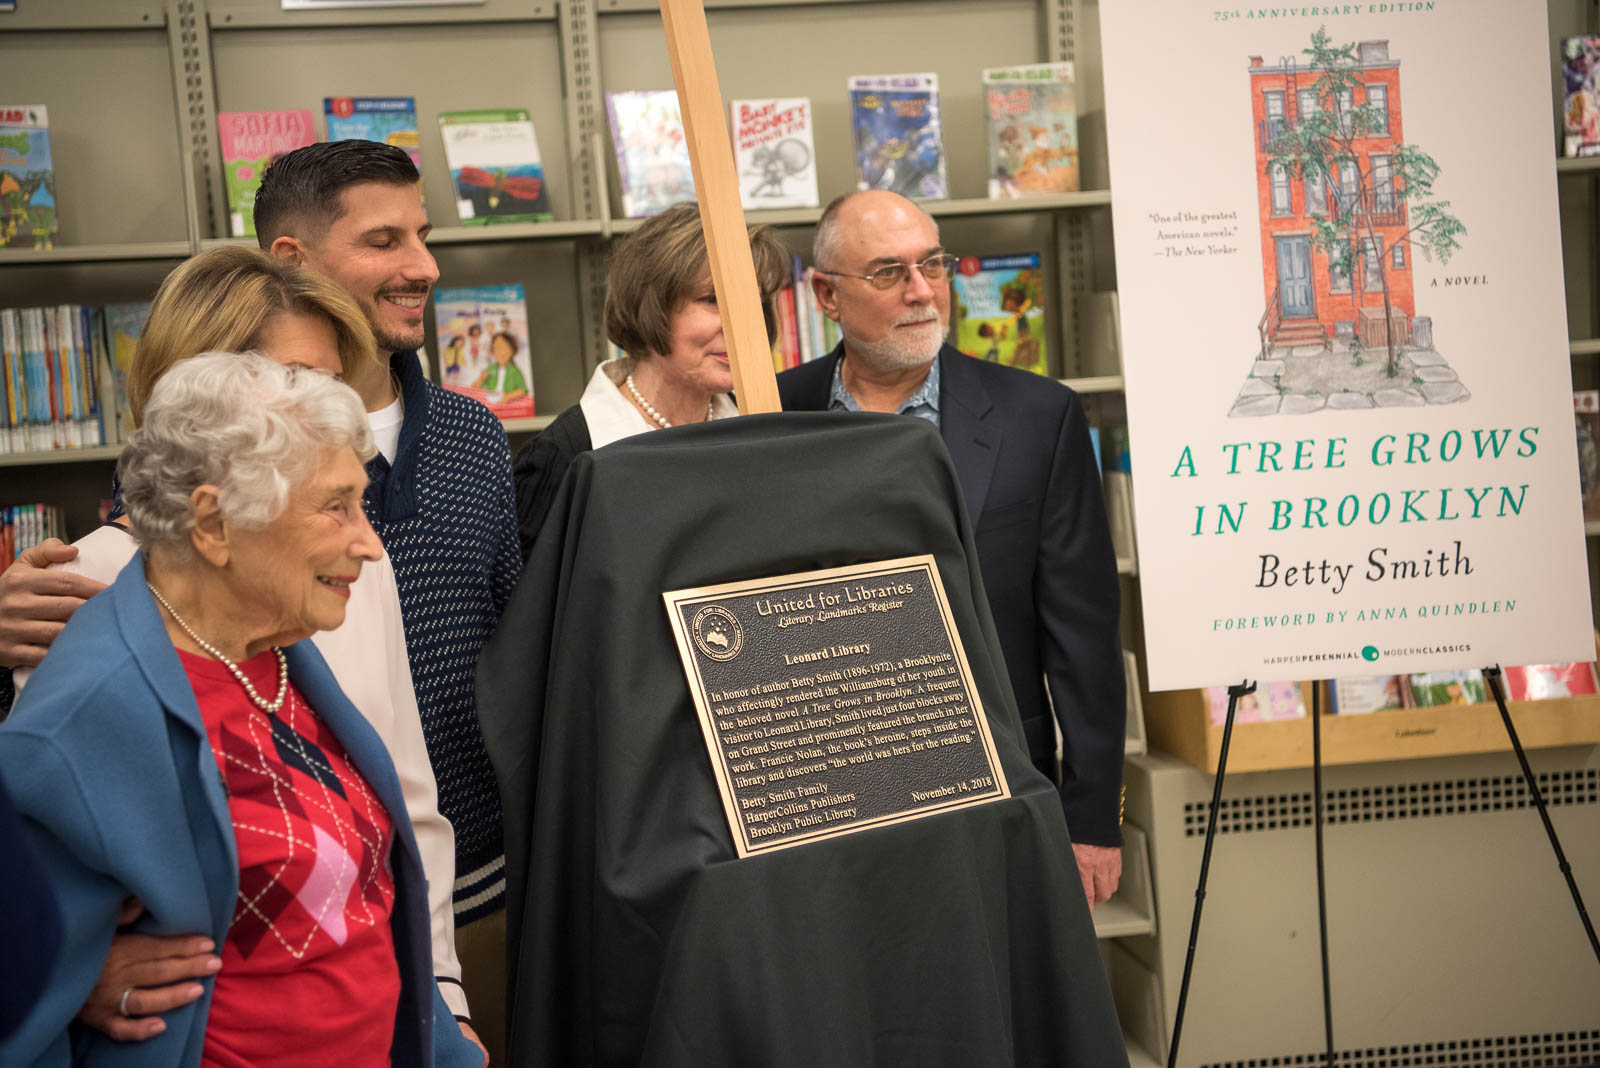 Unveiling the Literary Landmark plaque